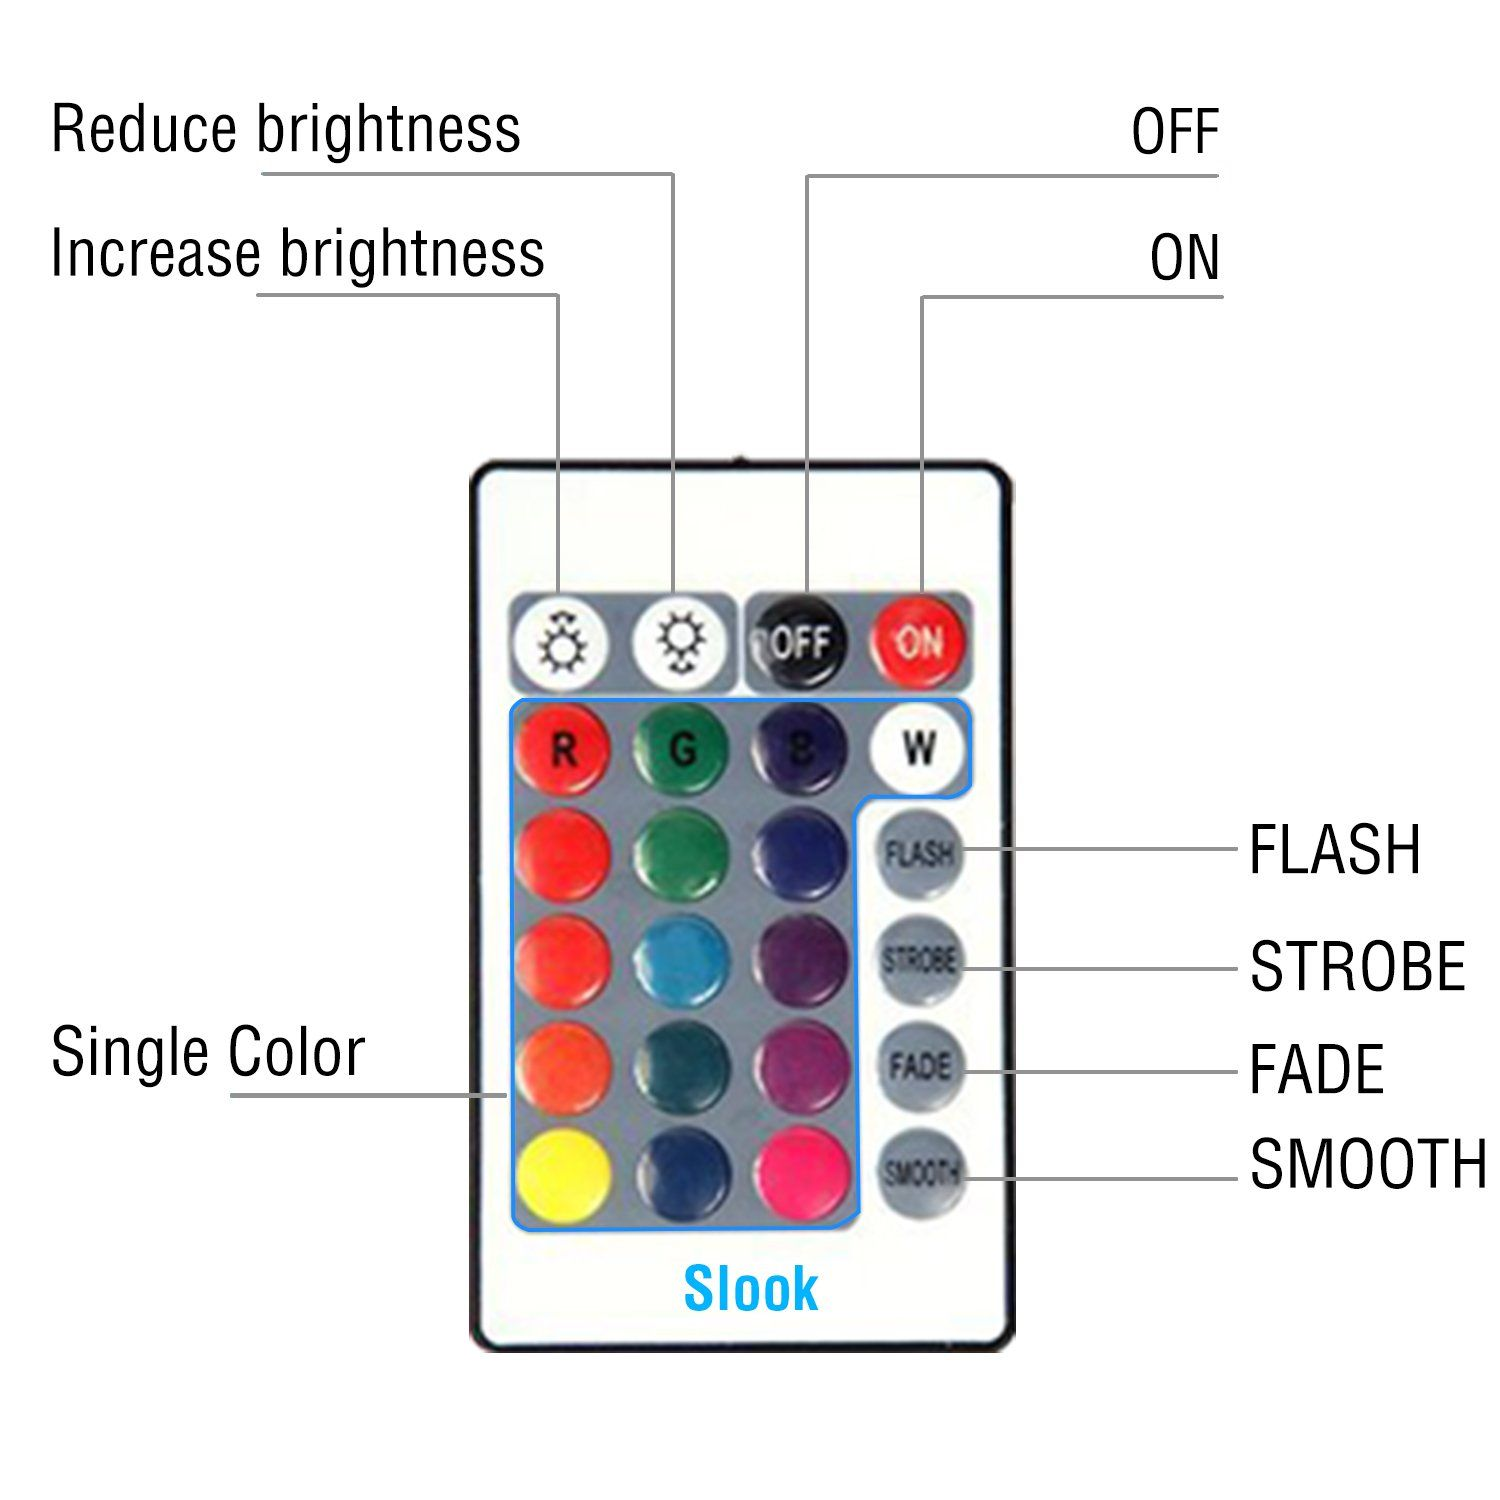 Submersible Led Lights 4 Pack Waterproof Light Multi Color Battery Operated Remote Control Wireless 10le Submersible Led Lights Submersible Lights Led Lights